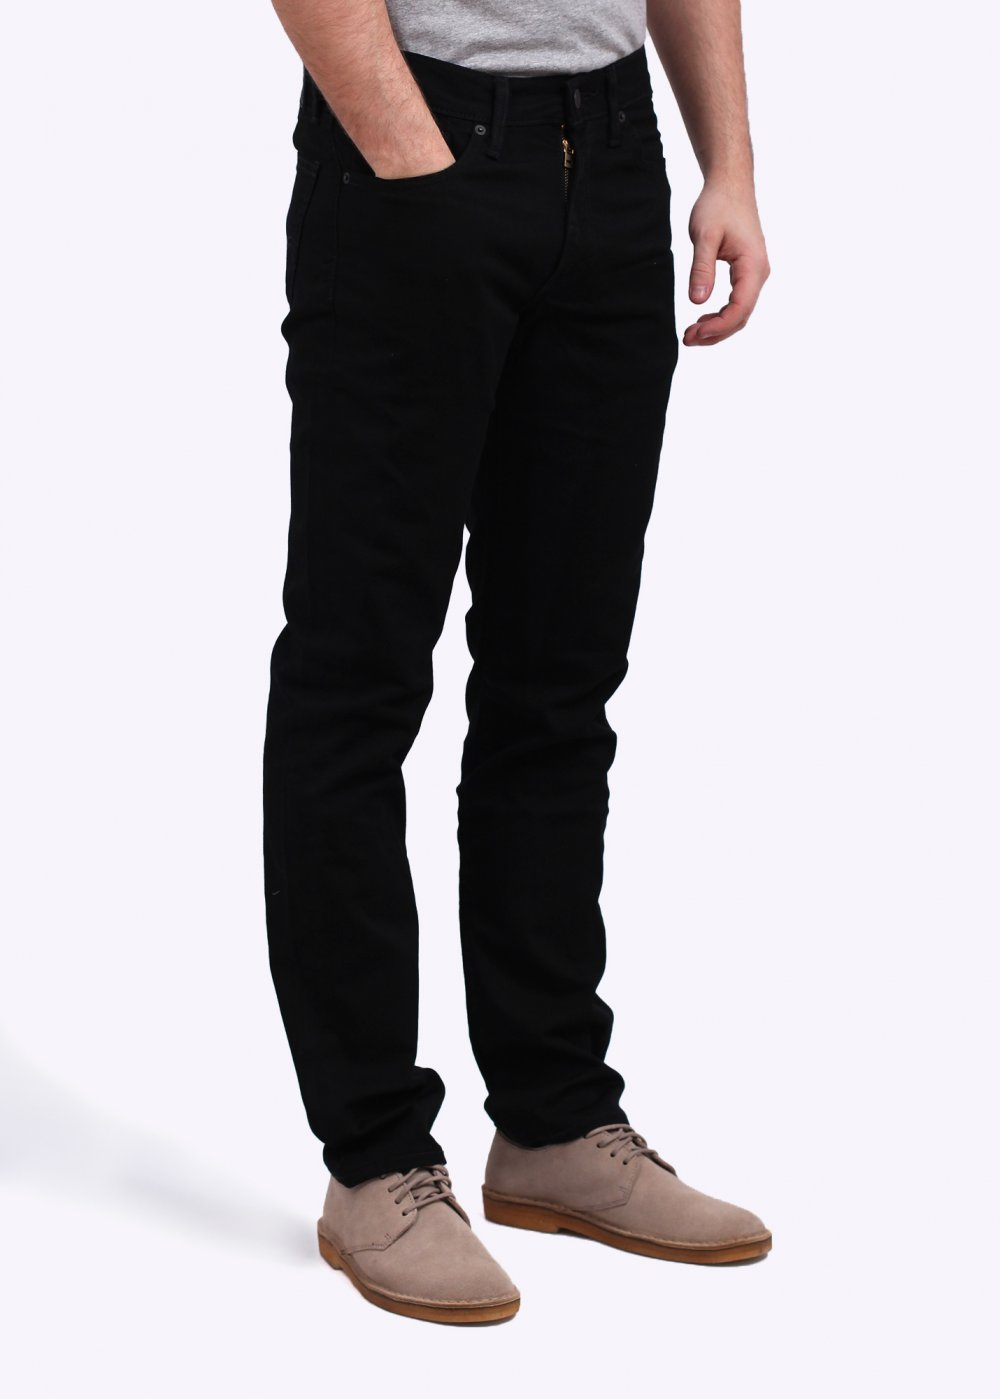 e925fc4e81 Levi's Red Tab 511 Slim Fit Jeans - Moonshine Black